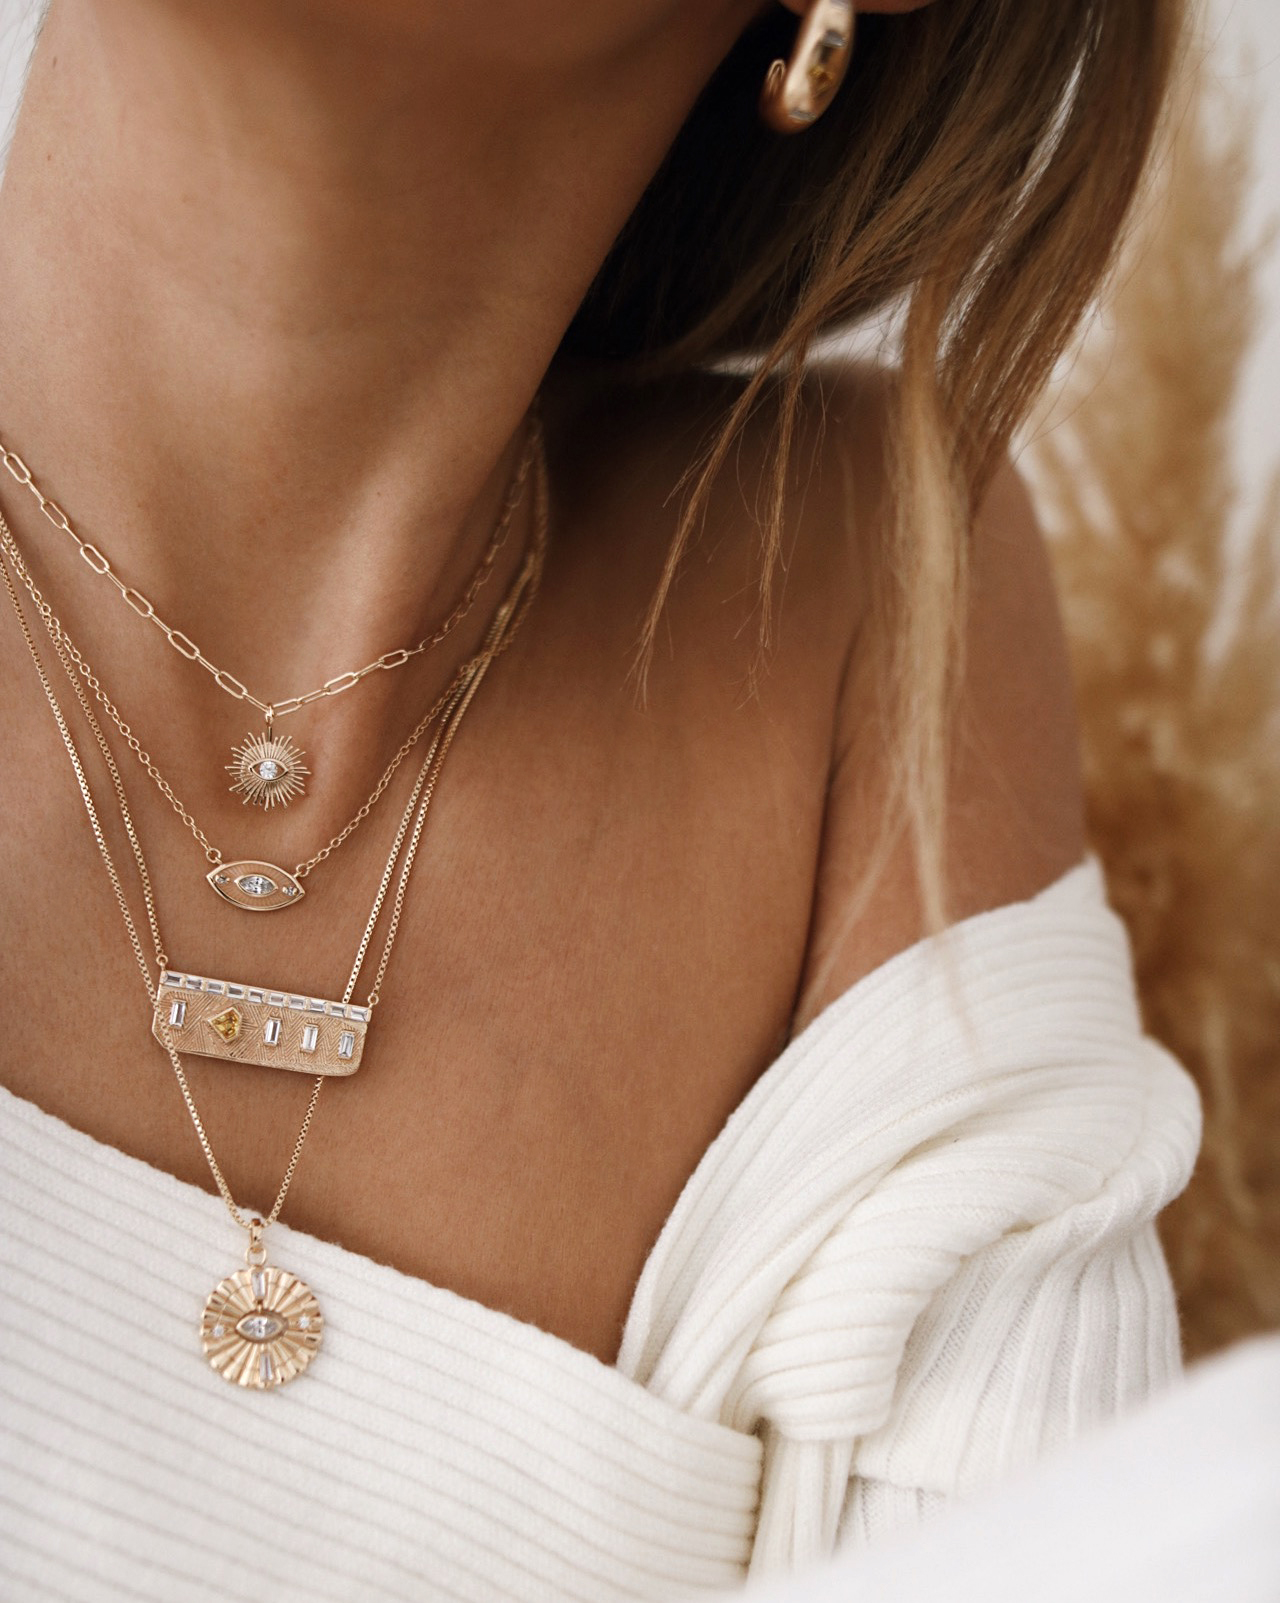 www.chonandchon.com jewelry addict, necklaces layering, gold jewelry